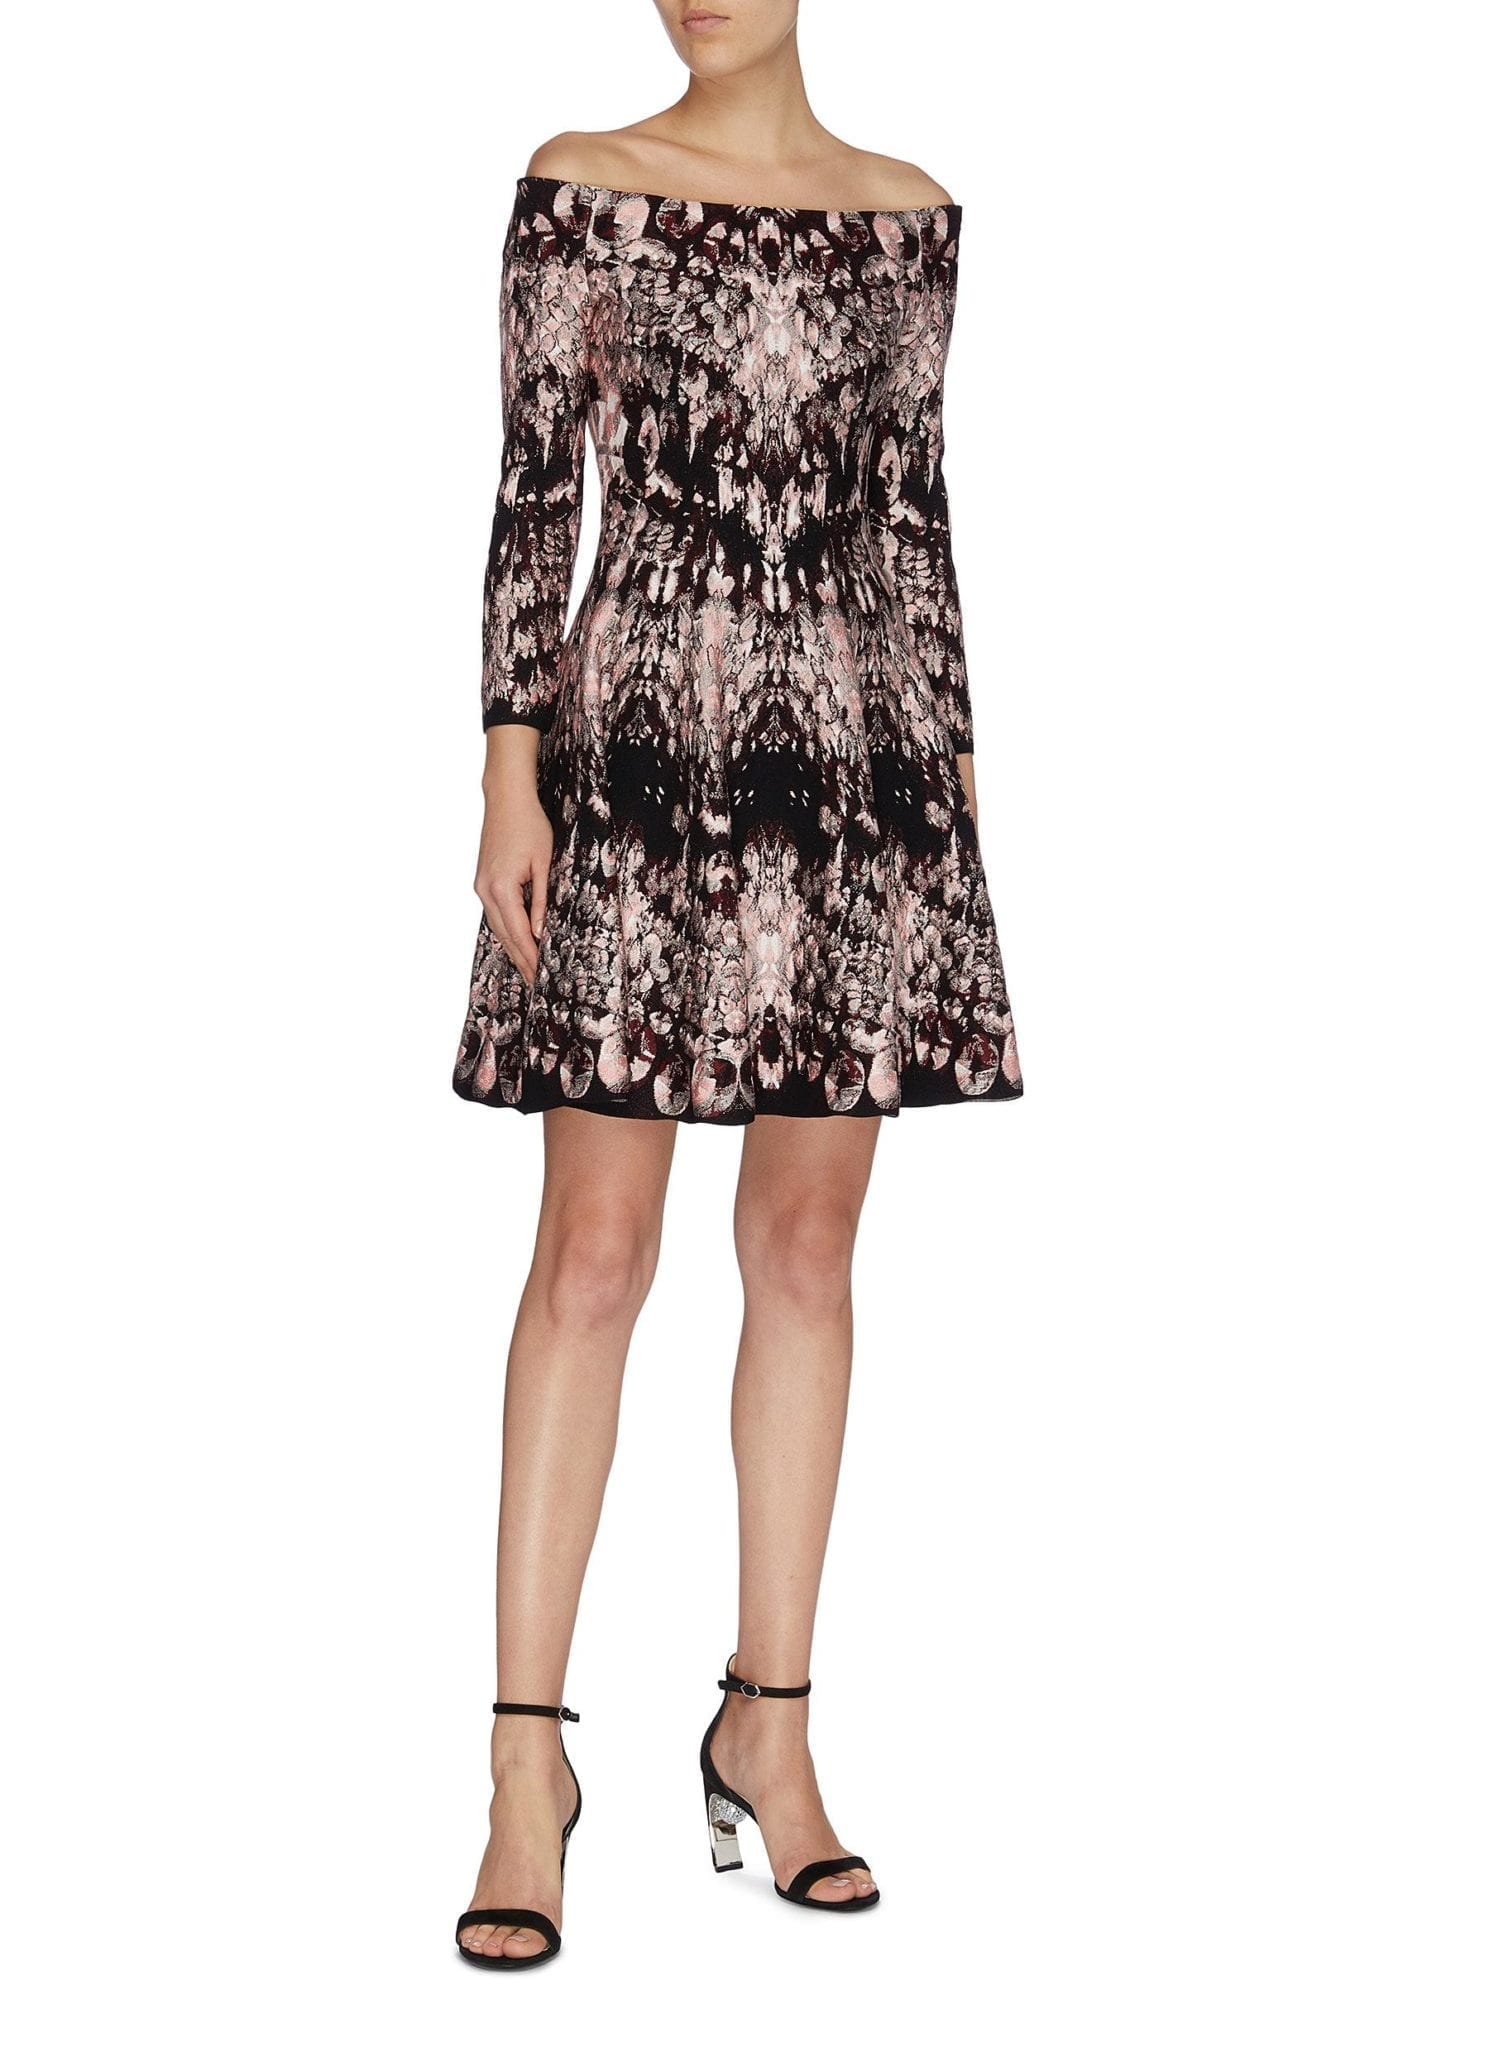 ALEXANDER MCQUEEN Flared Crystal Jacquard Off-shoulder Dress